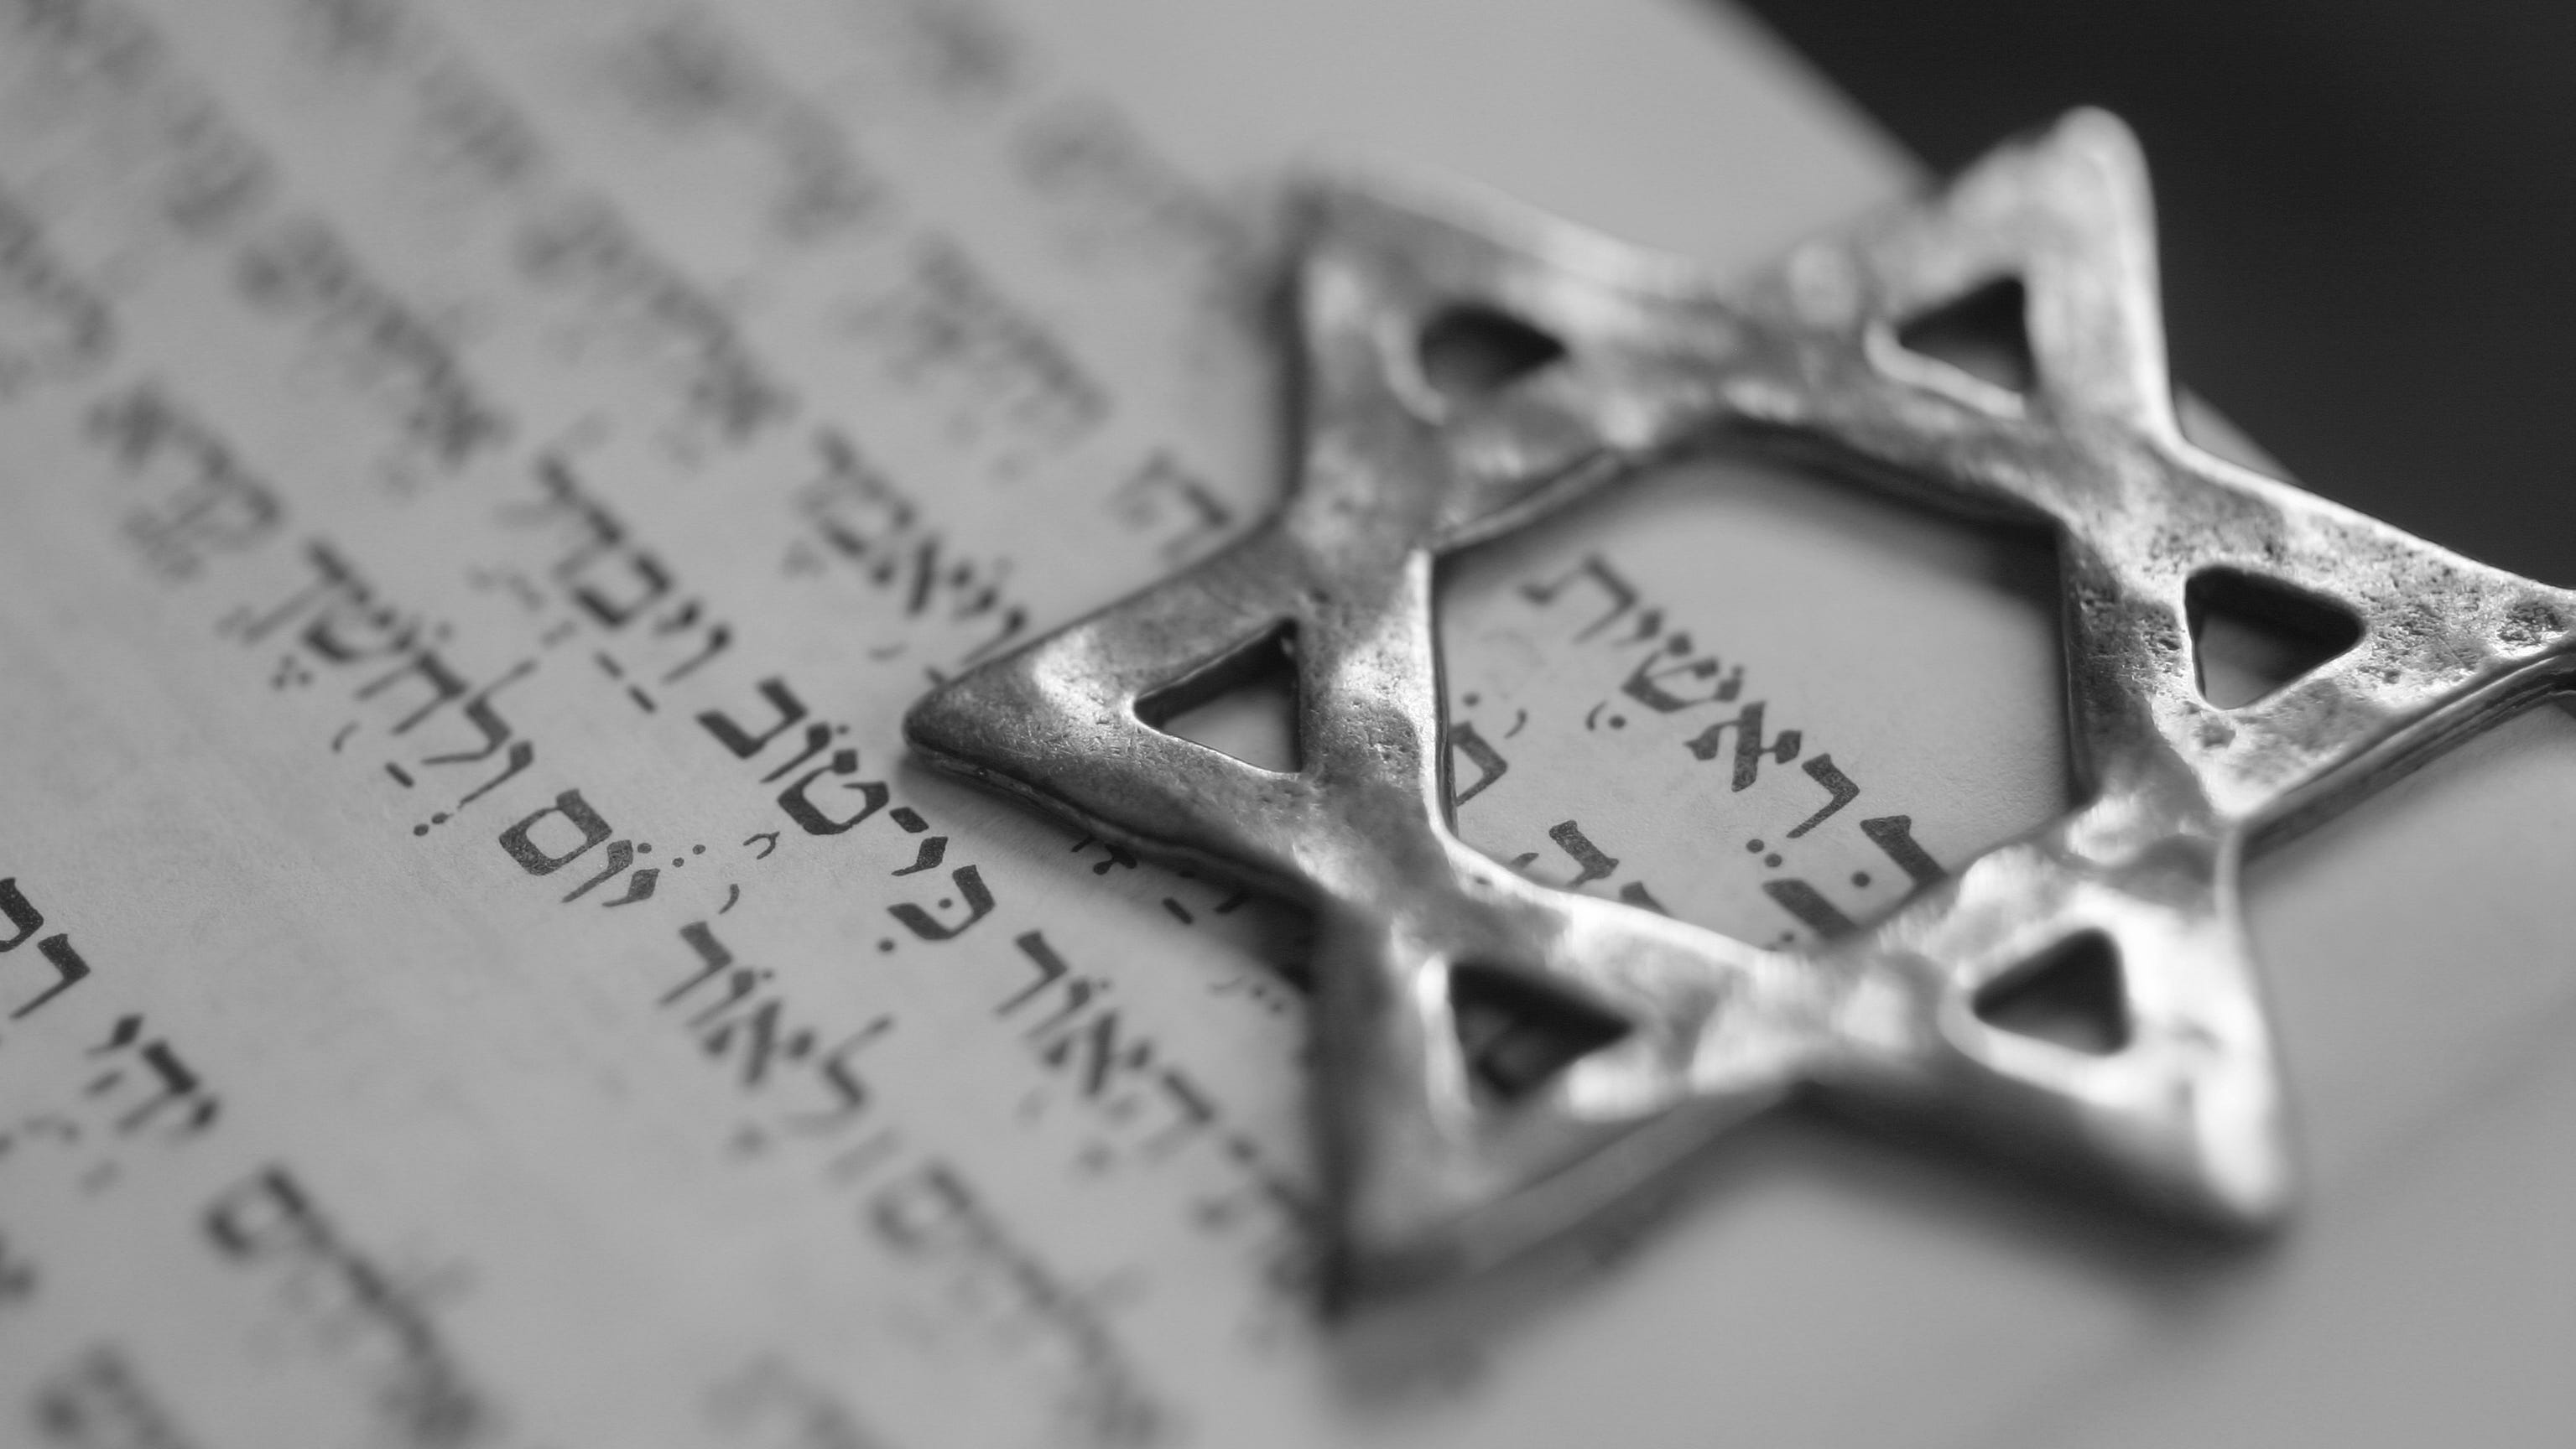 This is America: I returned to synagogue for the Jewish High Holidays. It felt like going home. - AZCentral.com